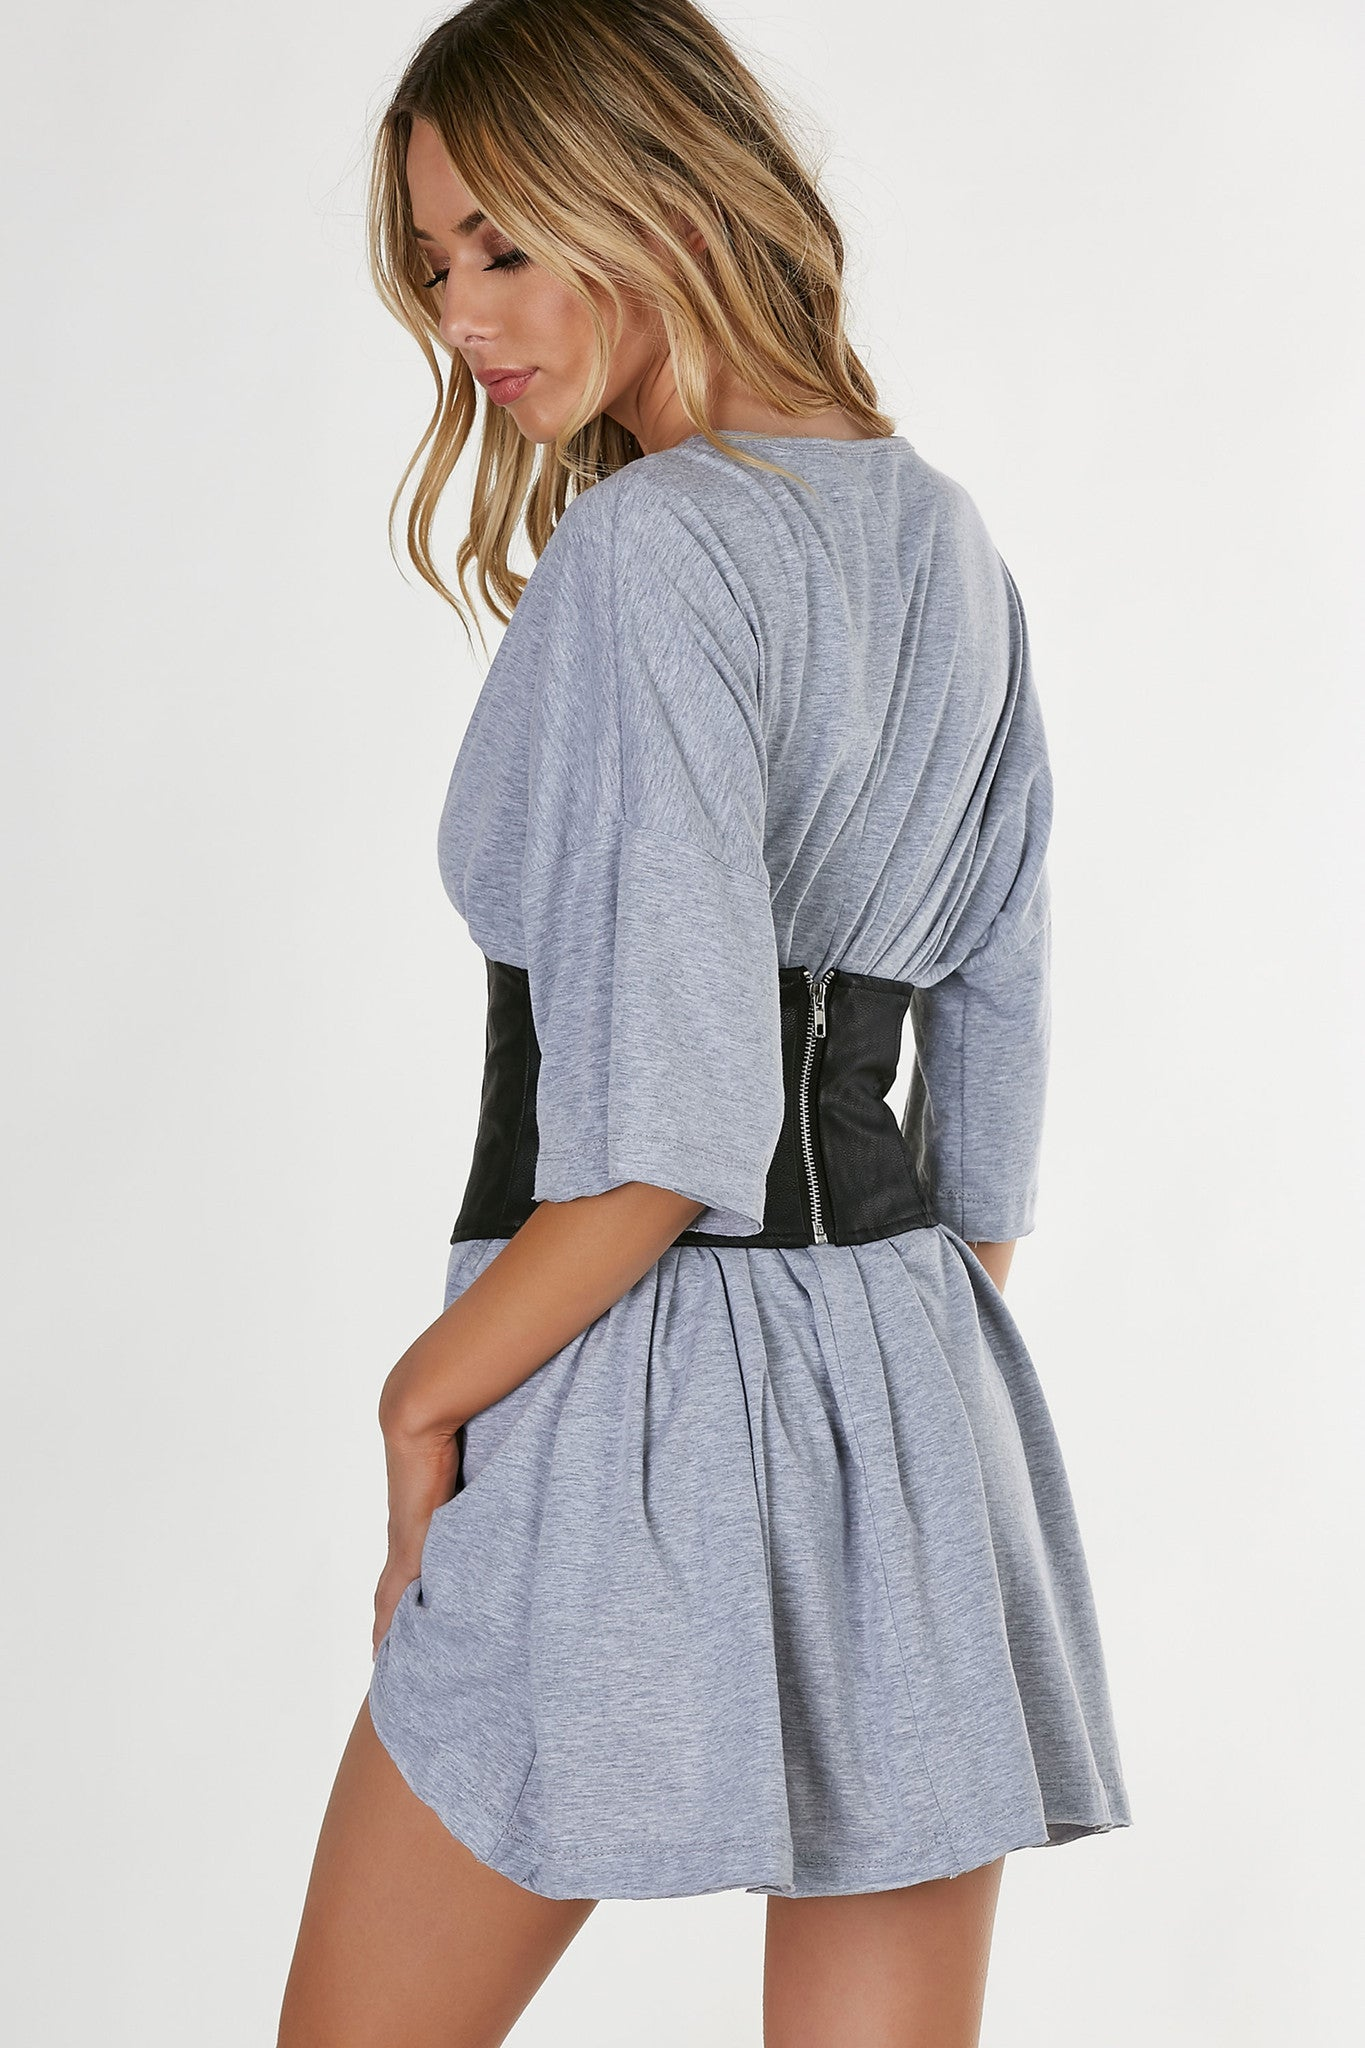 Sexy faux leather waist belt with trendy lace up design in front and back zip closure.